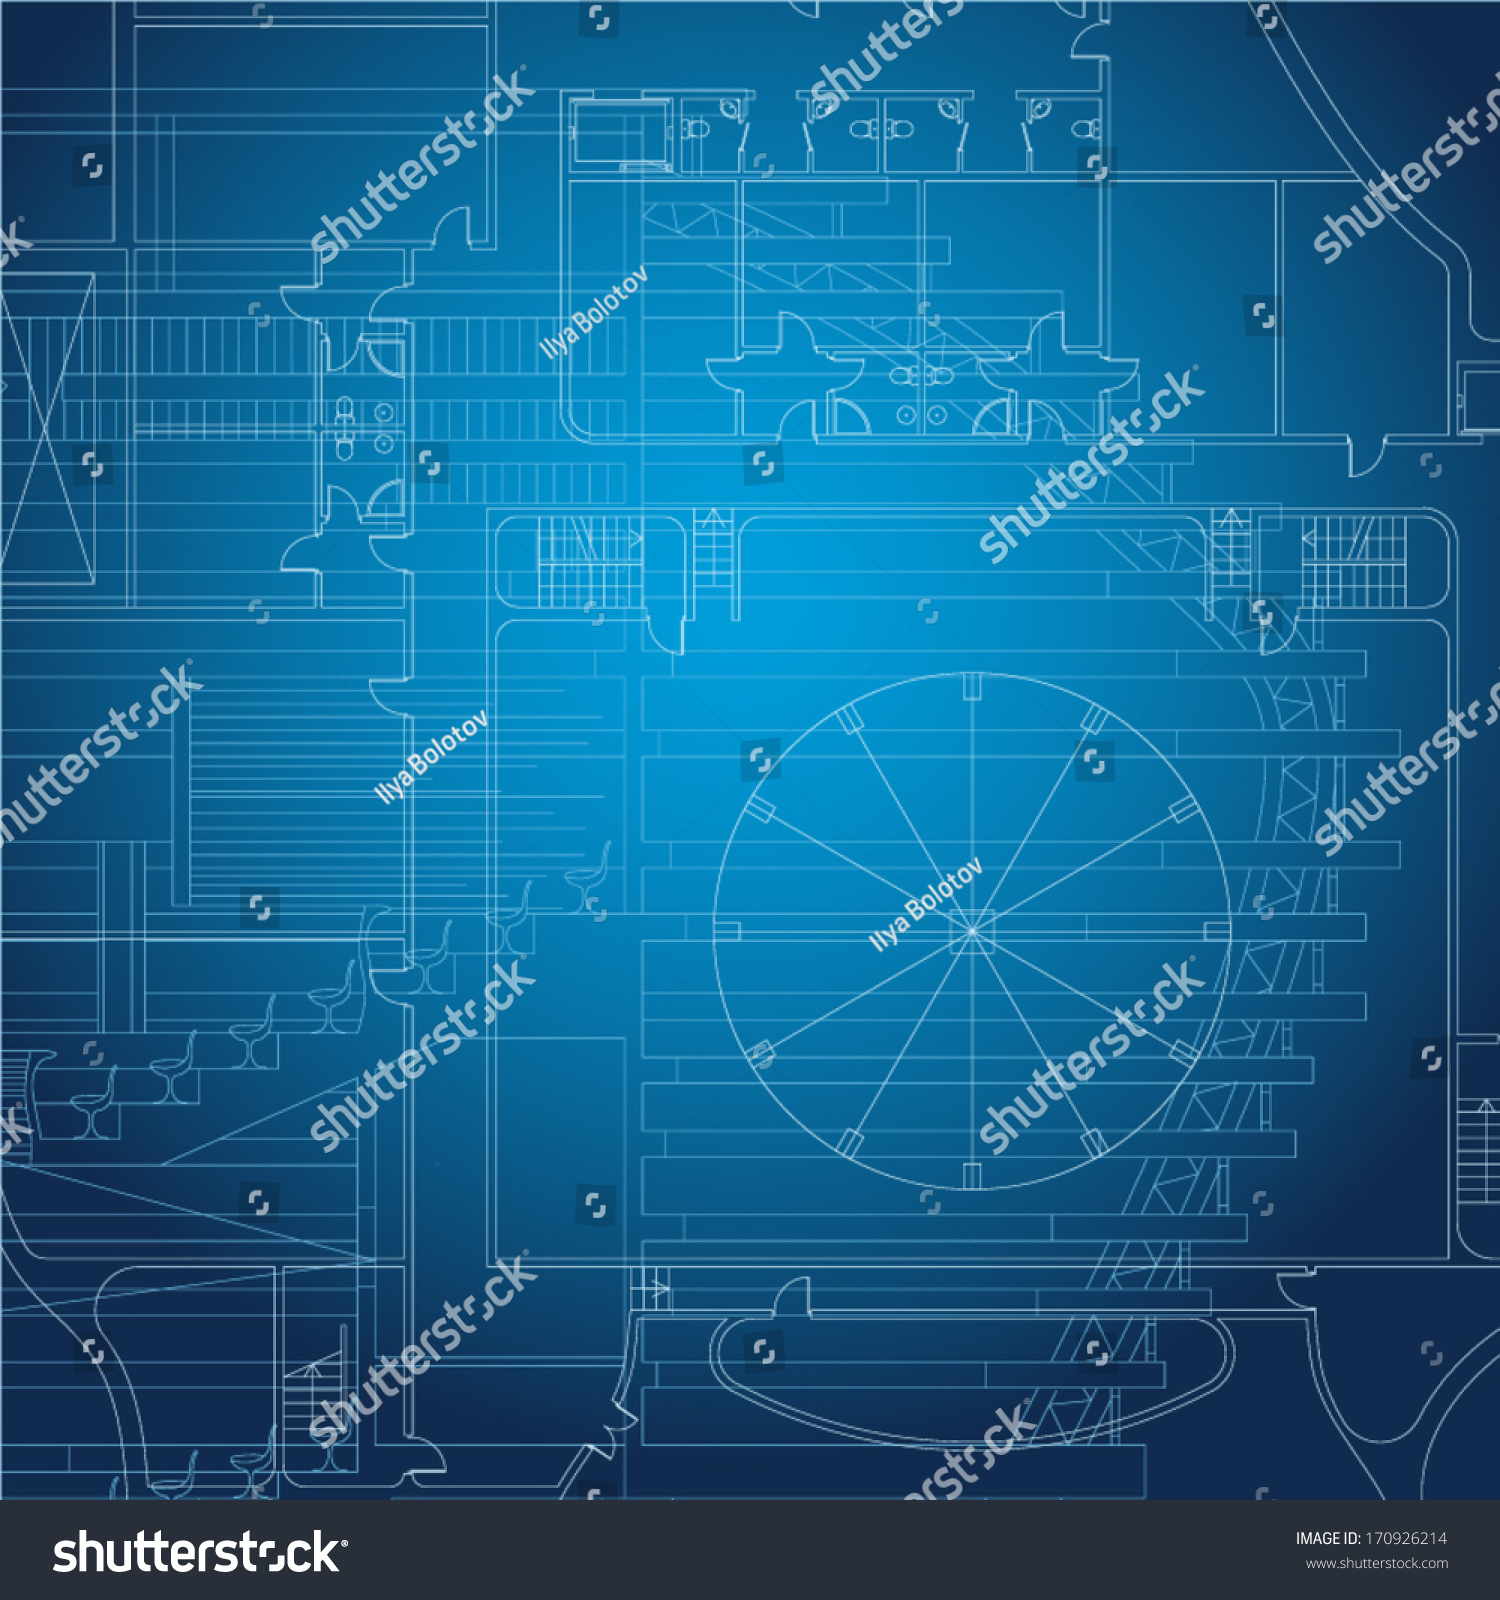 Architectural blueprint vector drawings stock vector 170926214 architectural blueprint vector drawings malvernweather Images